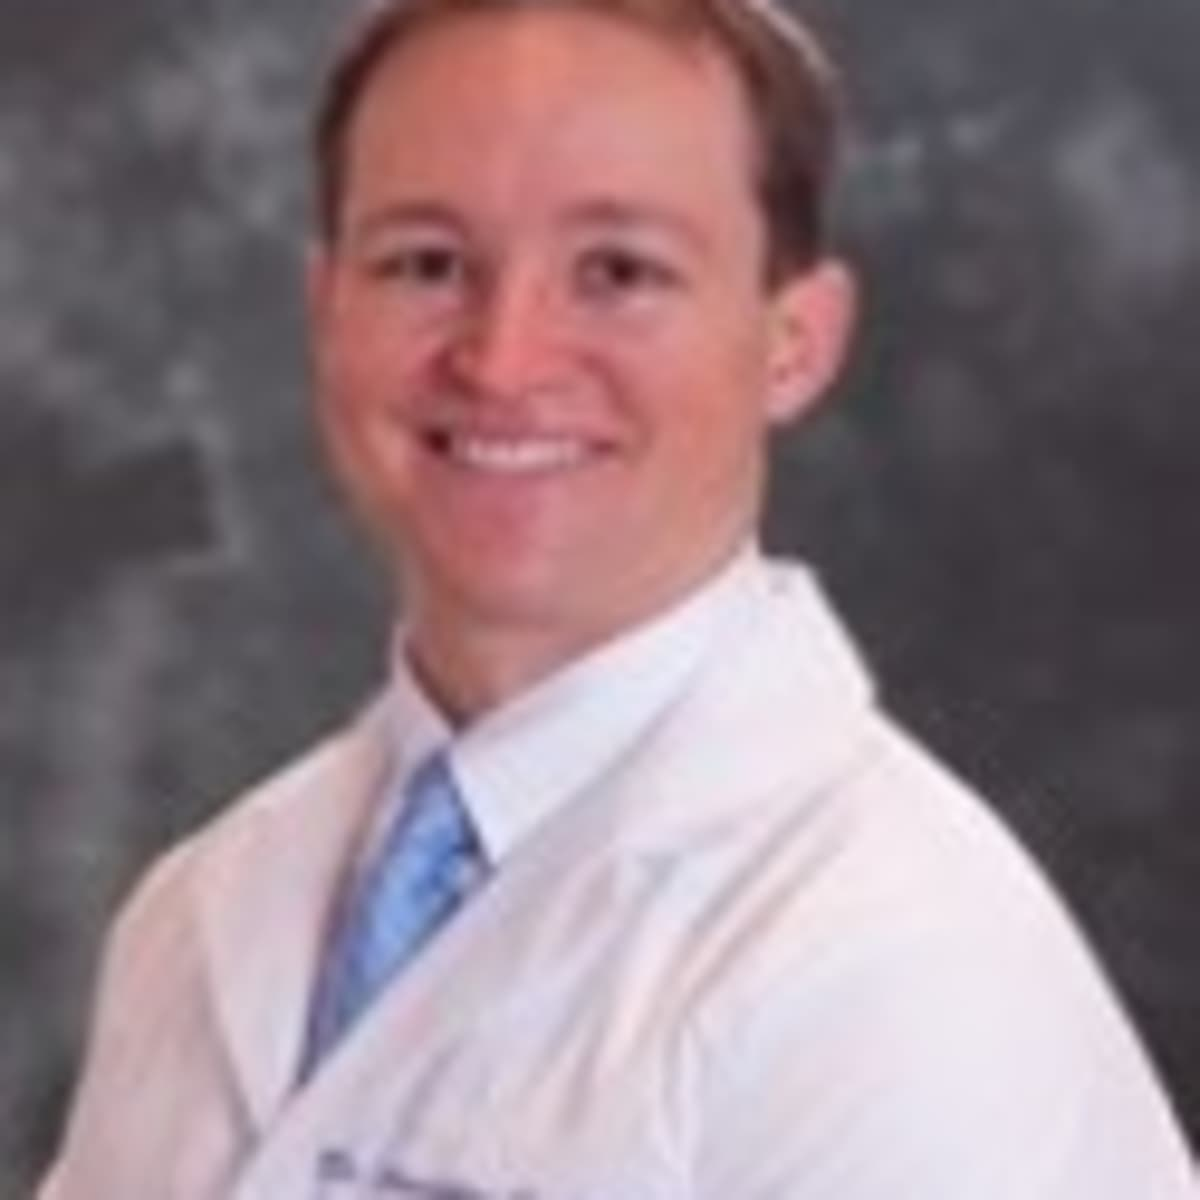 dr jonathan gottlieb md south miami fl orthopedic spine surgeon